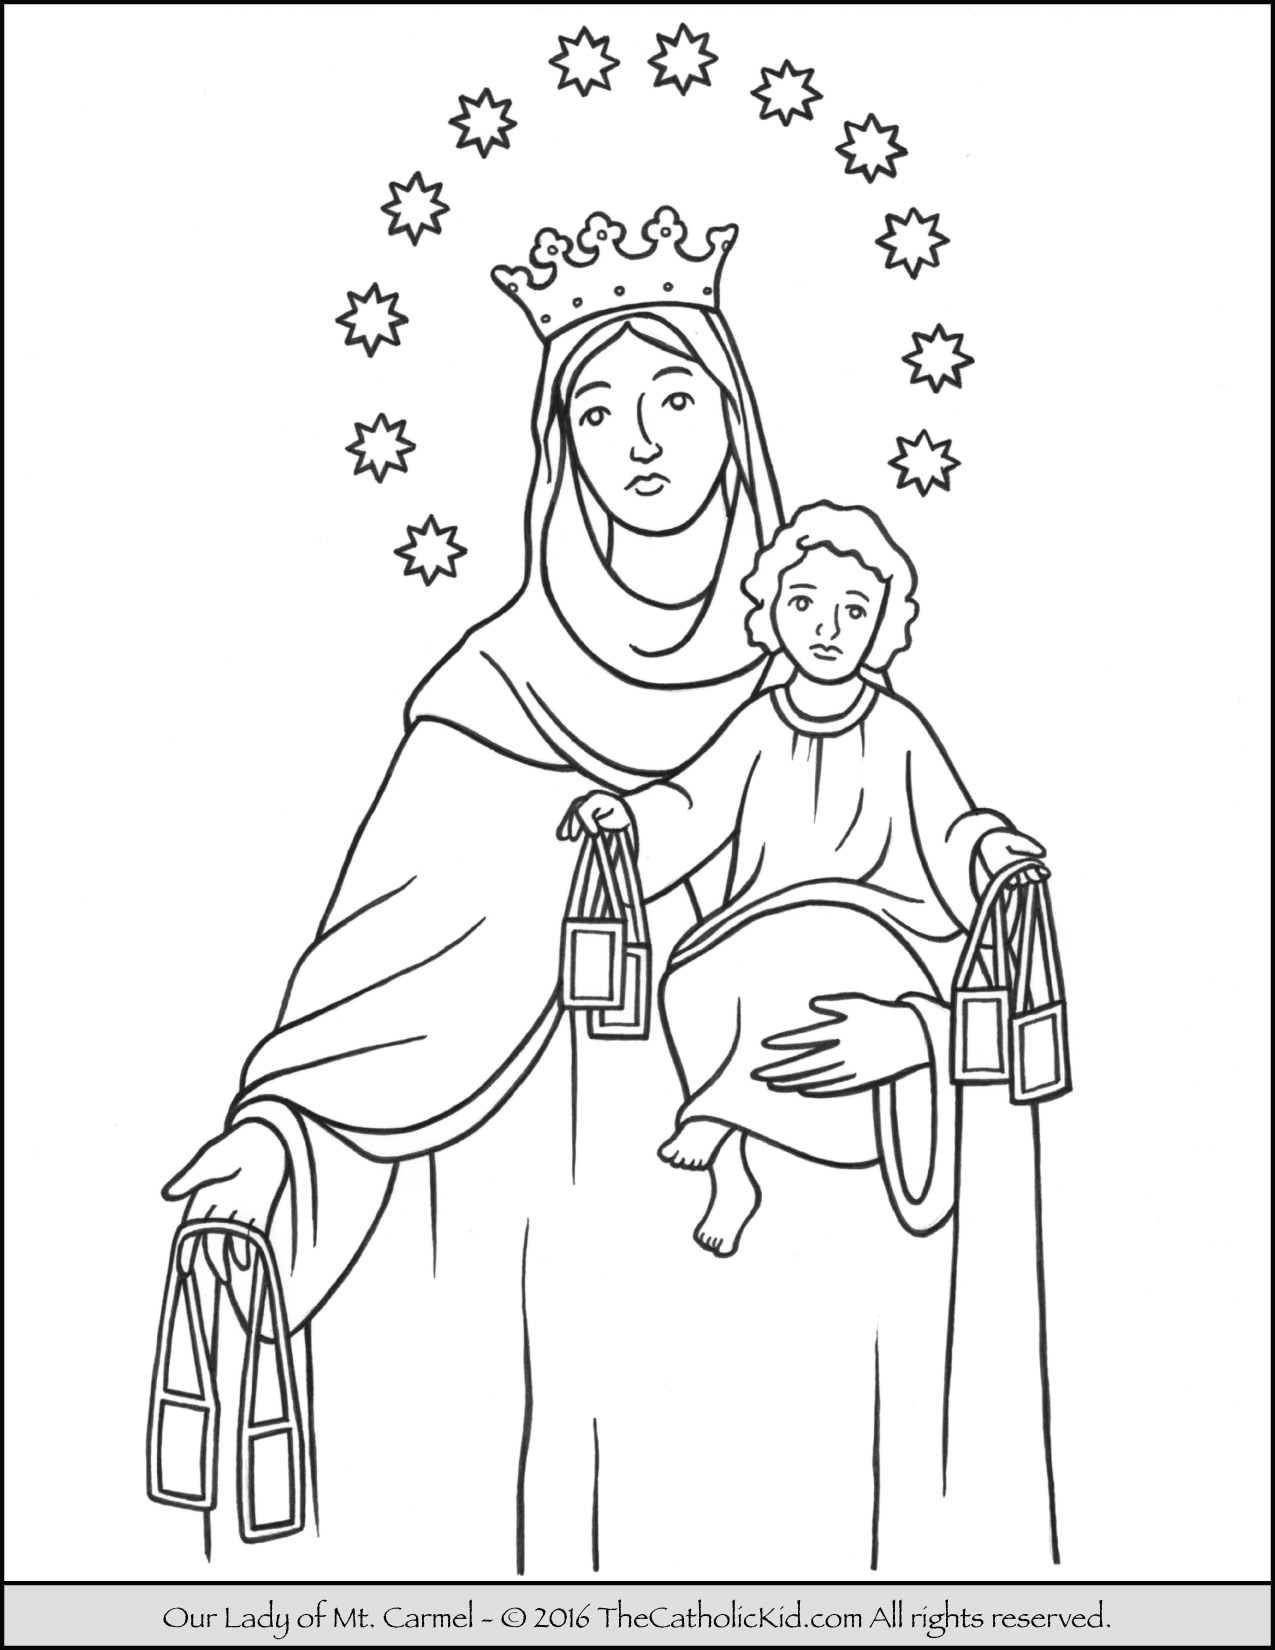 mary magdalene coloring page are we there yet the feast of st mary magdalene mary magdalene coloring page